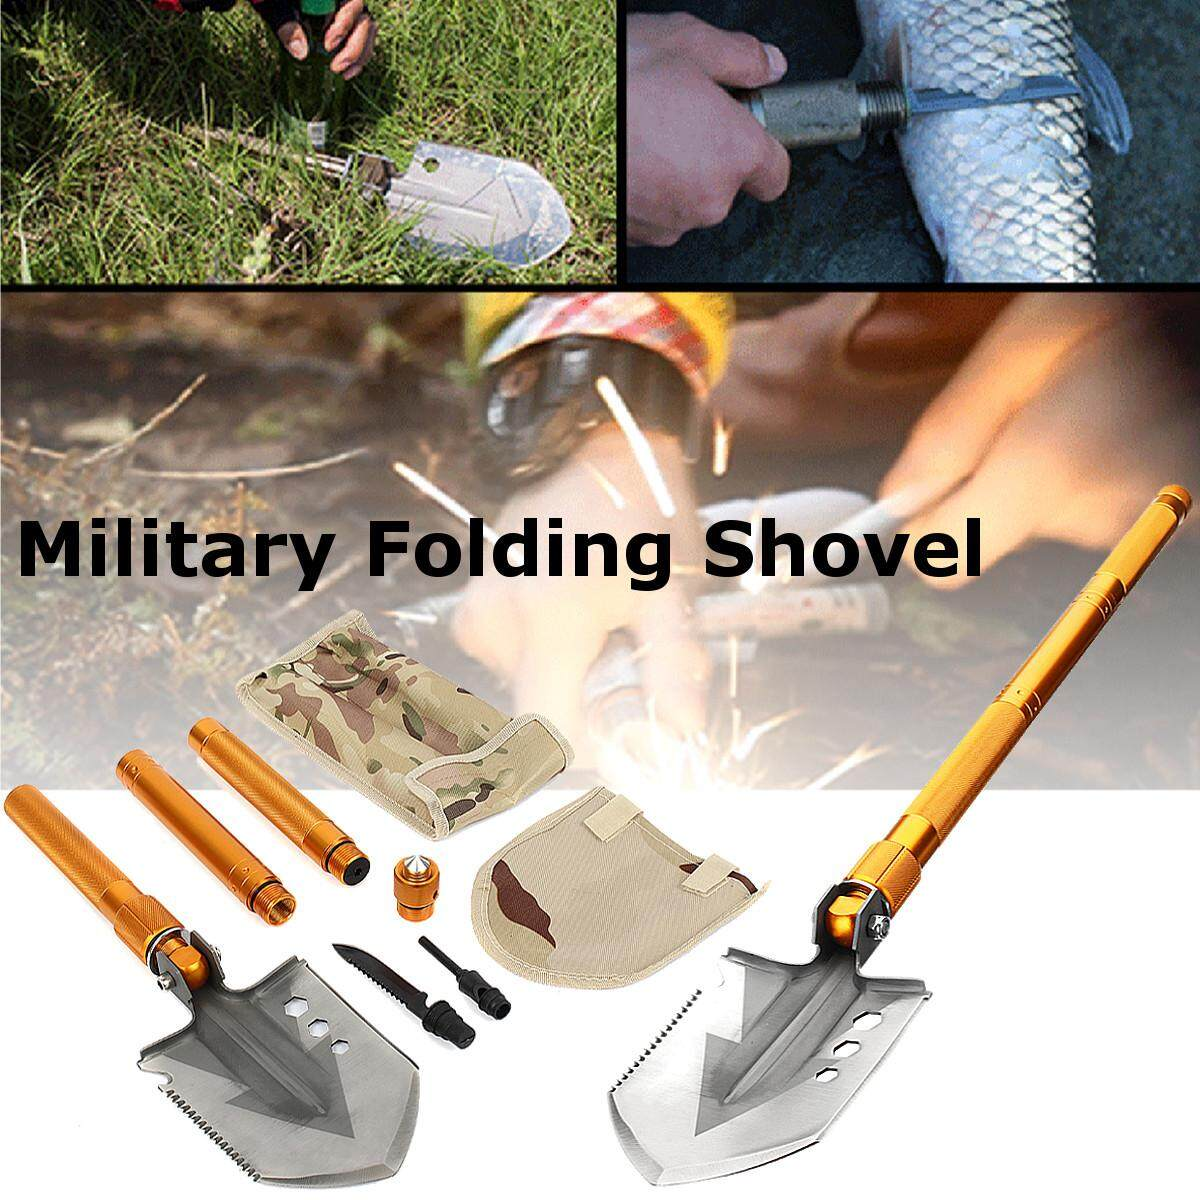 Military Folding Shovel Camping Multi Function Survival Outdoor Hiking Emergency